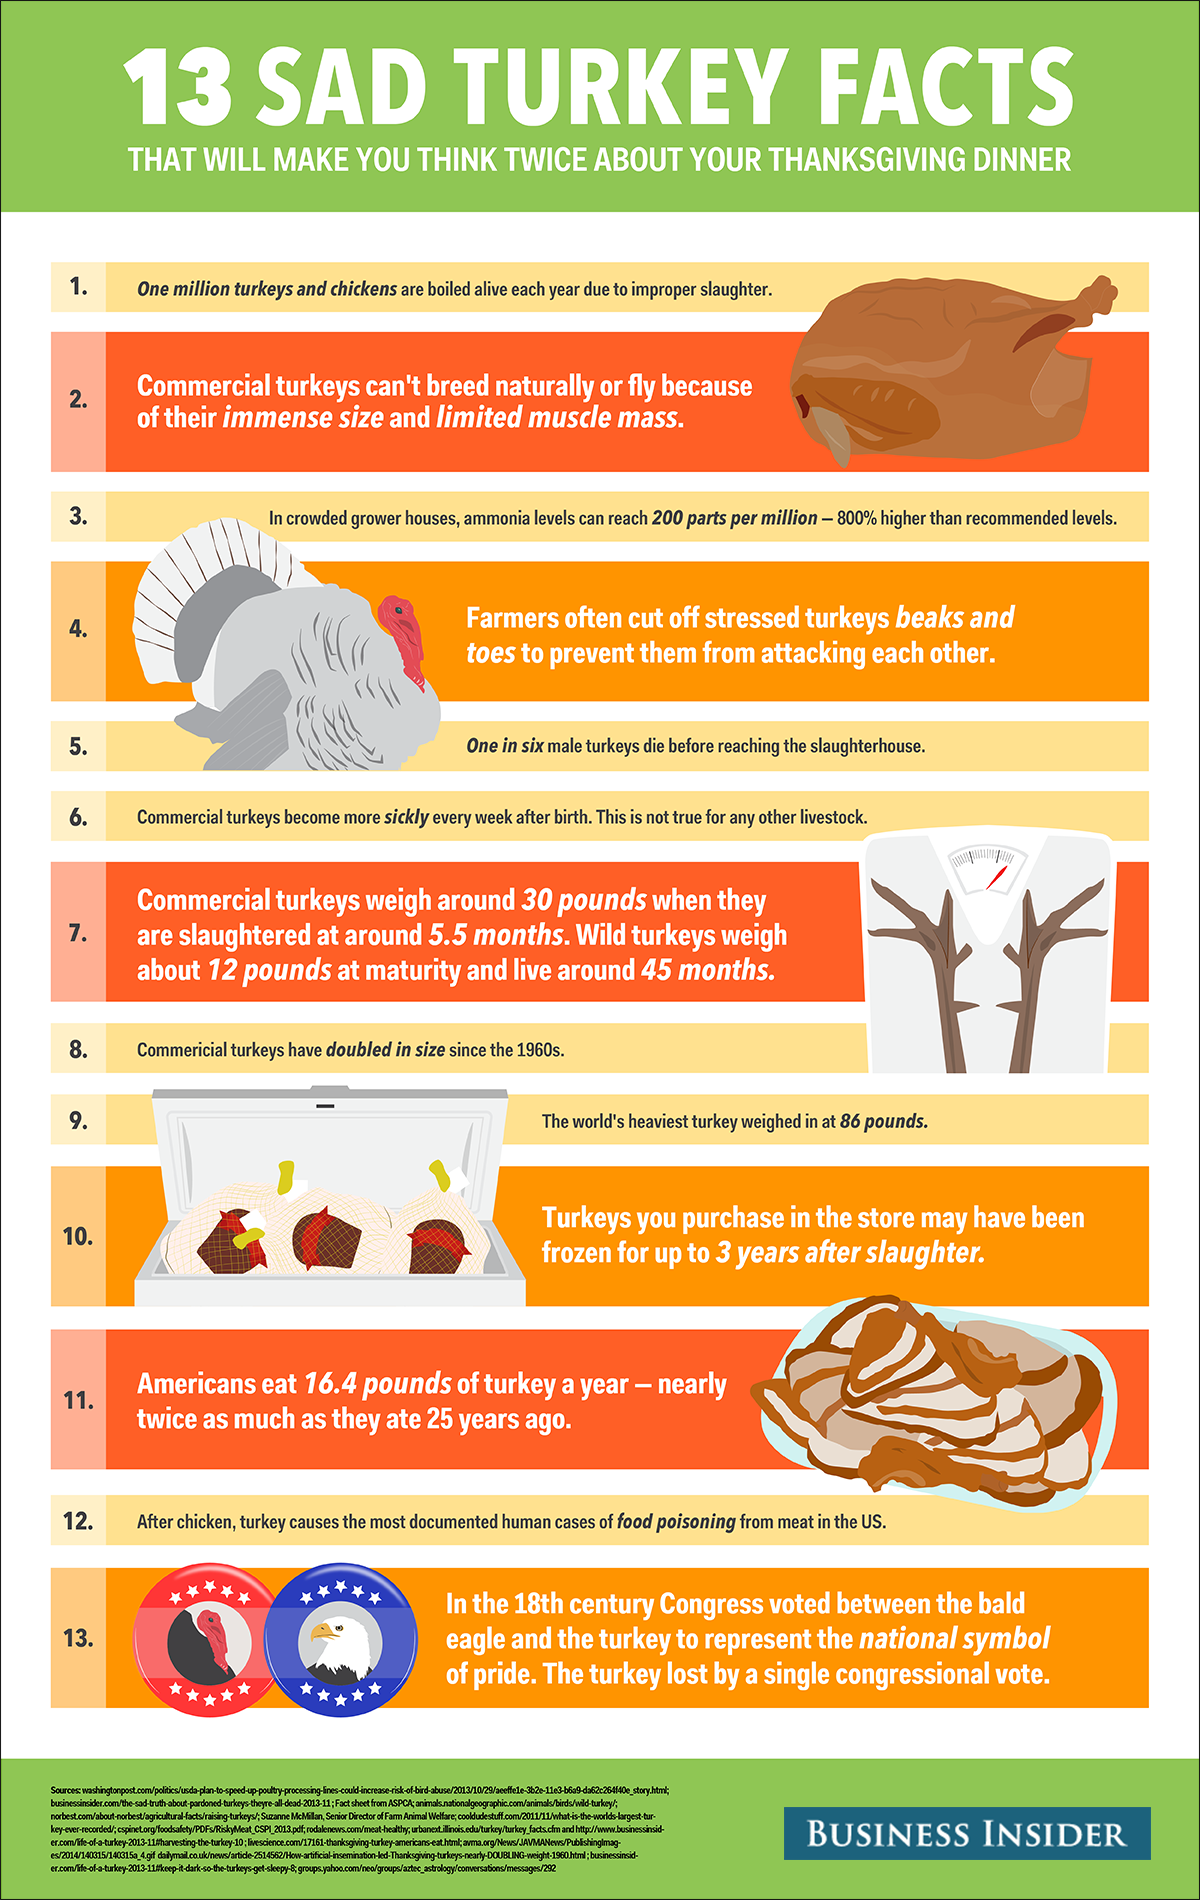 13 Sad Sad Facts About Your Thanksgiving Turkey